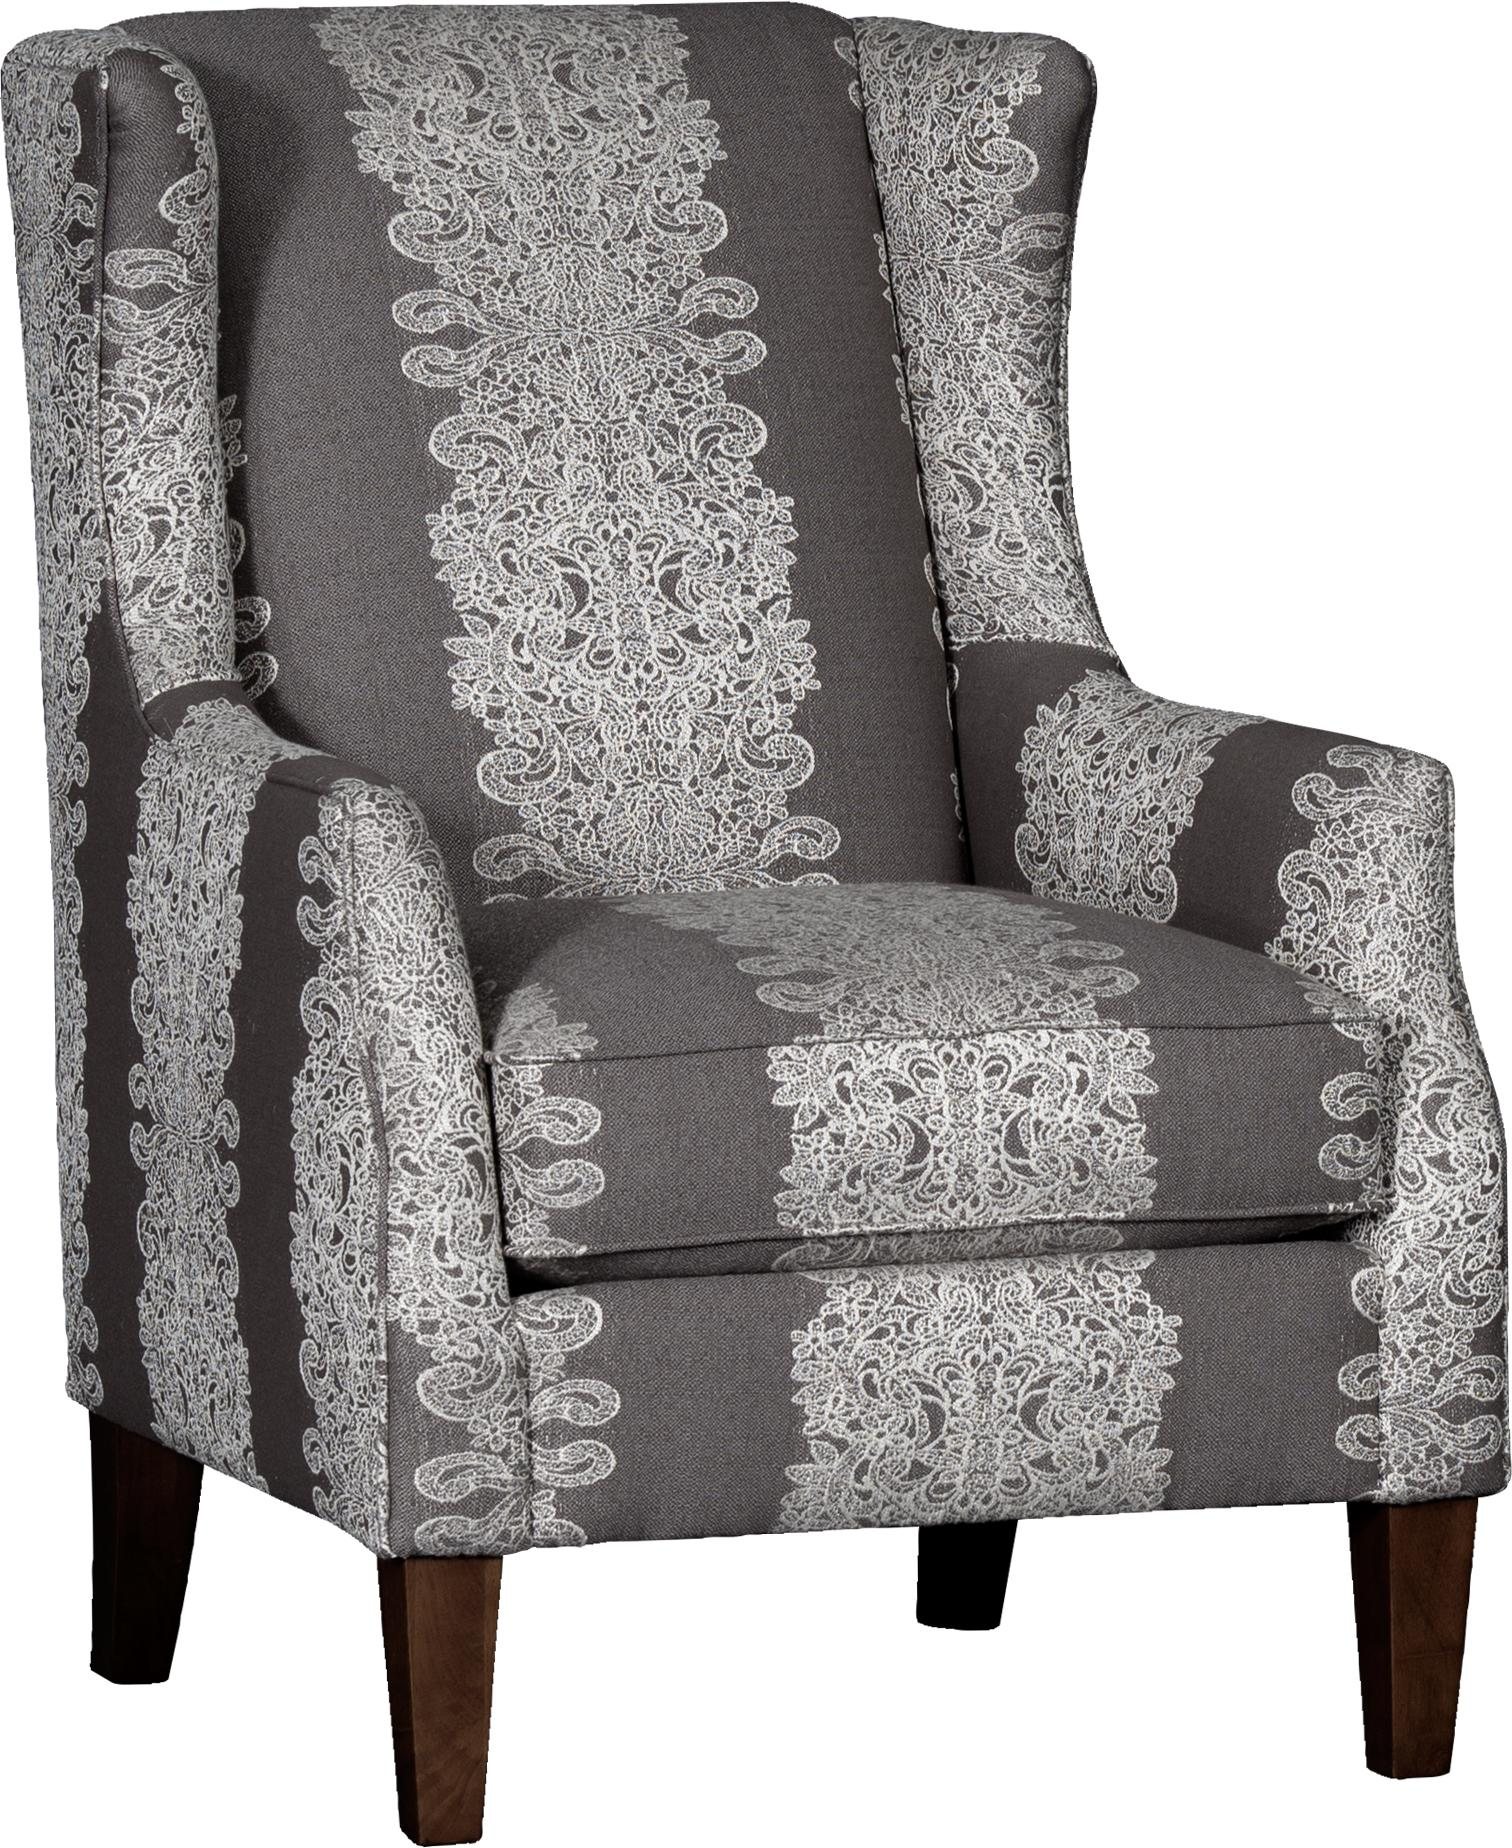 8840 Wing Chair by Mayo at Pedigo Furniture